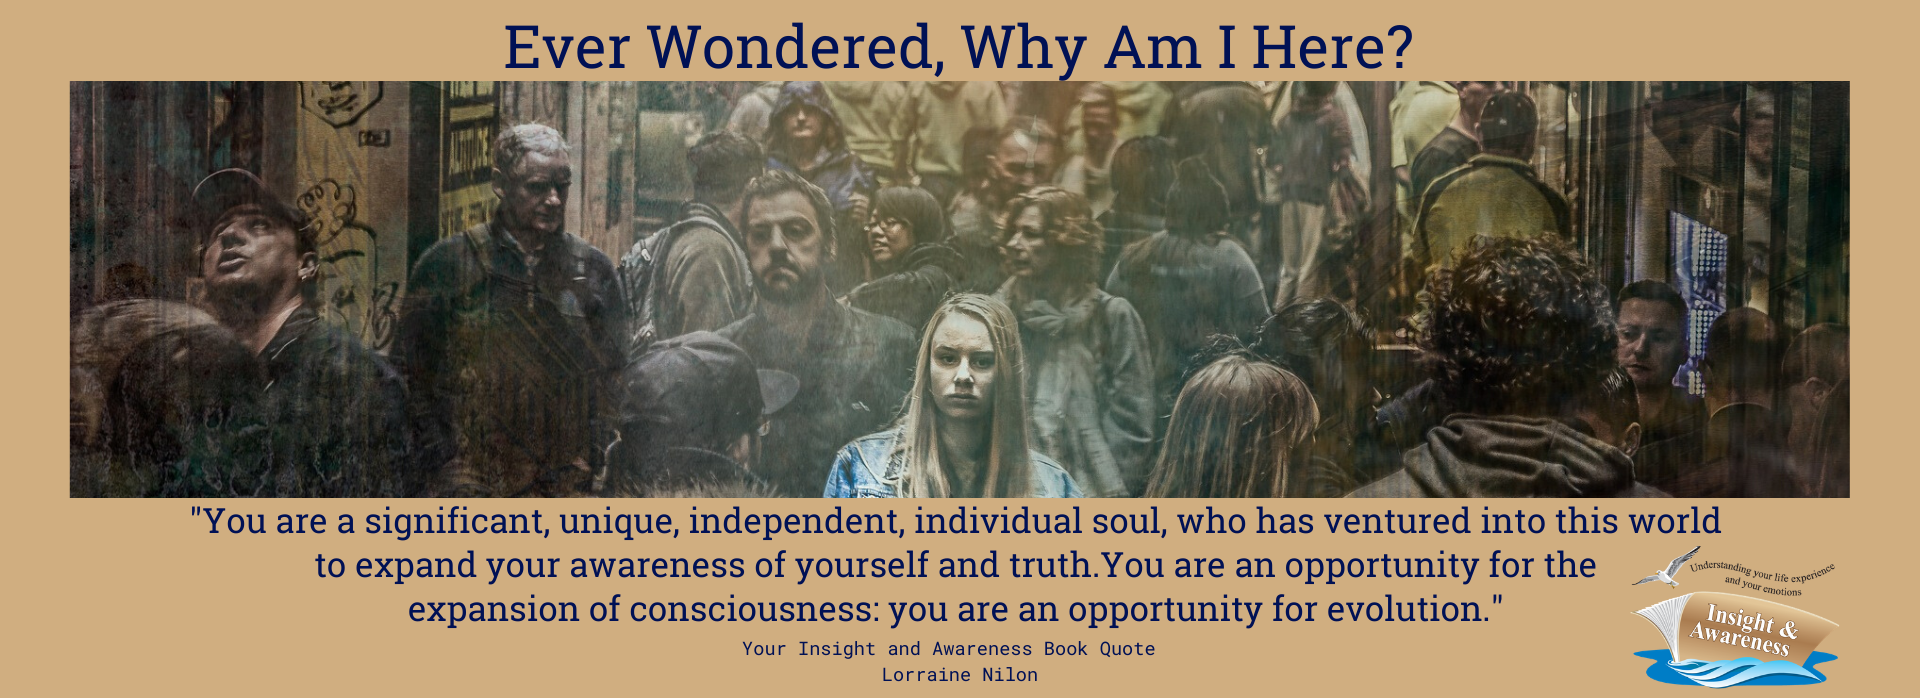 crowd of miserable people with a focus on one depressed girl looking for answers- plus expanding consciousness quote